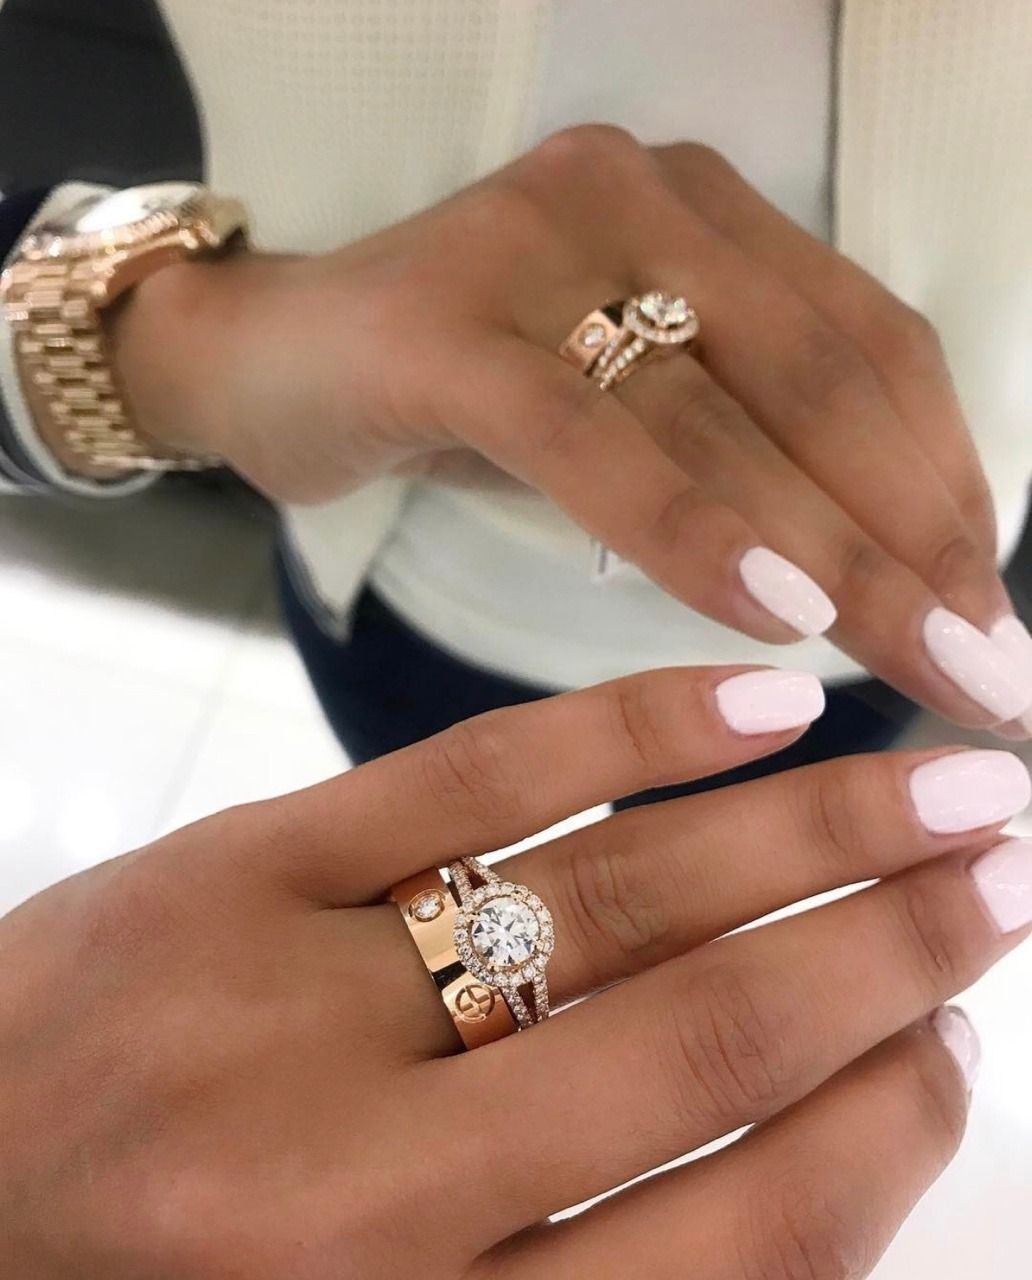 Glam Spam — 💧 Cartier love ring, Cartier wedding rings